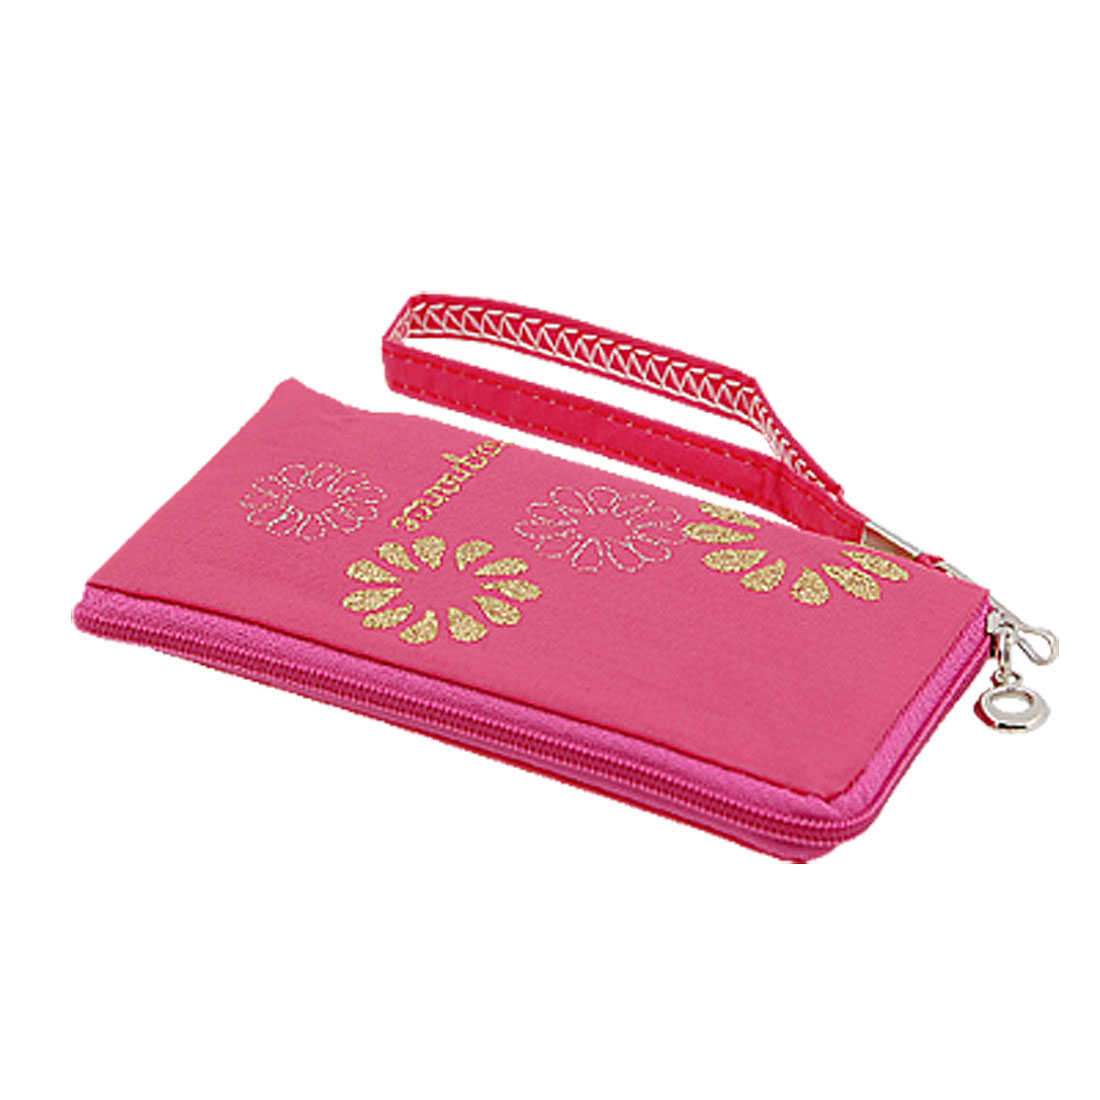 Flower Design zippered Bag Pouch for Mobile Phone